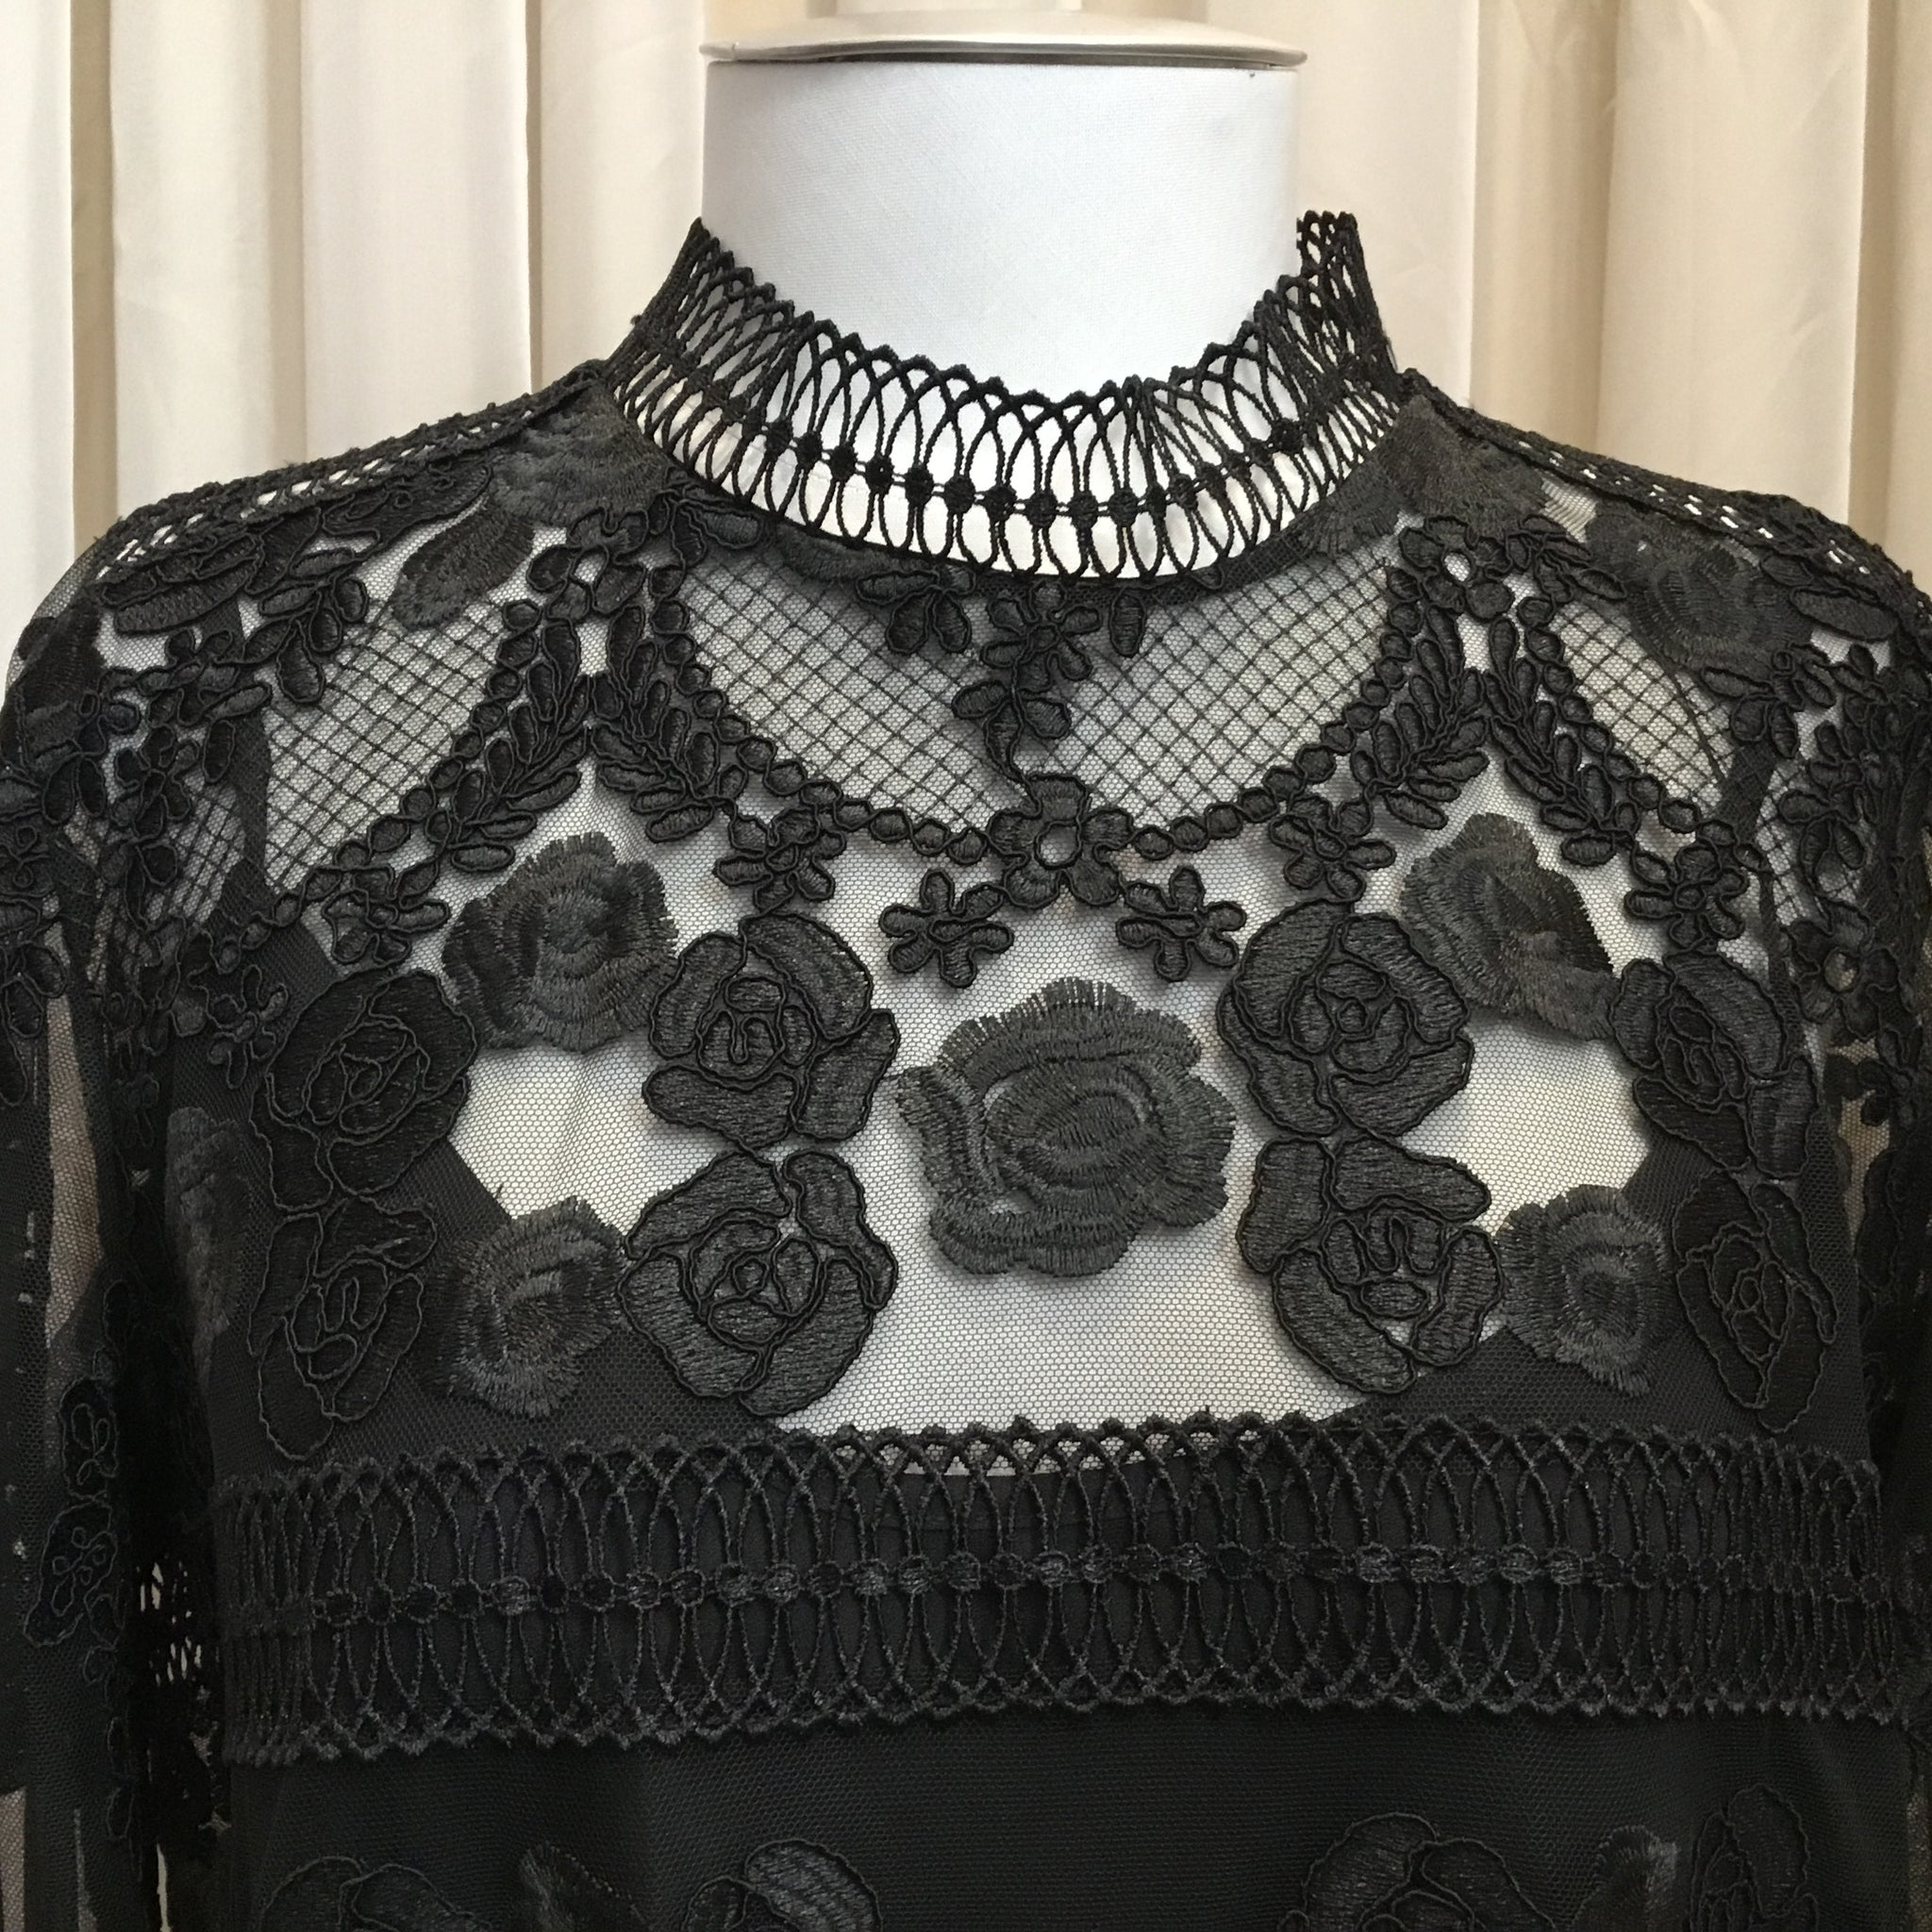 A Embroidered Black Top